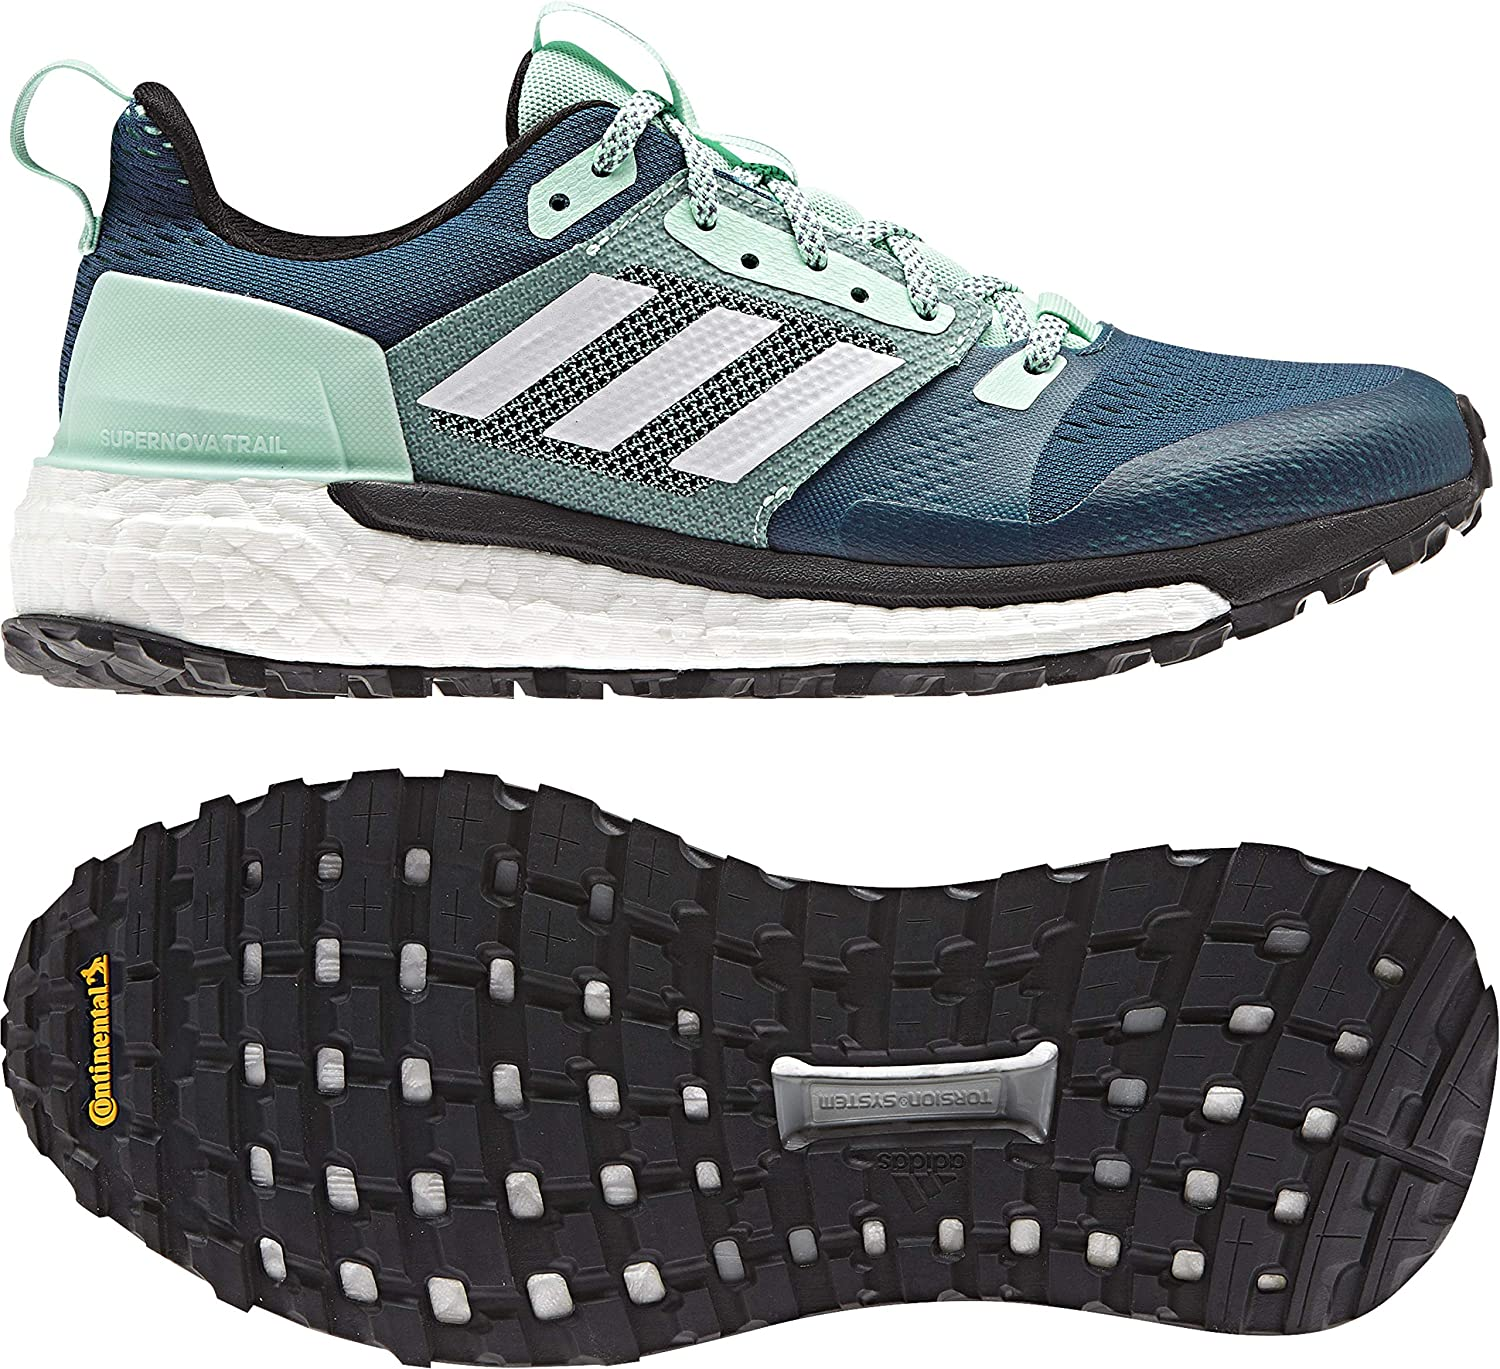 adidas outdoor Women s Supernova Trail